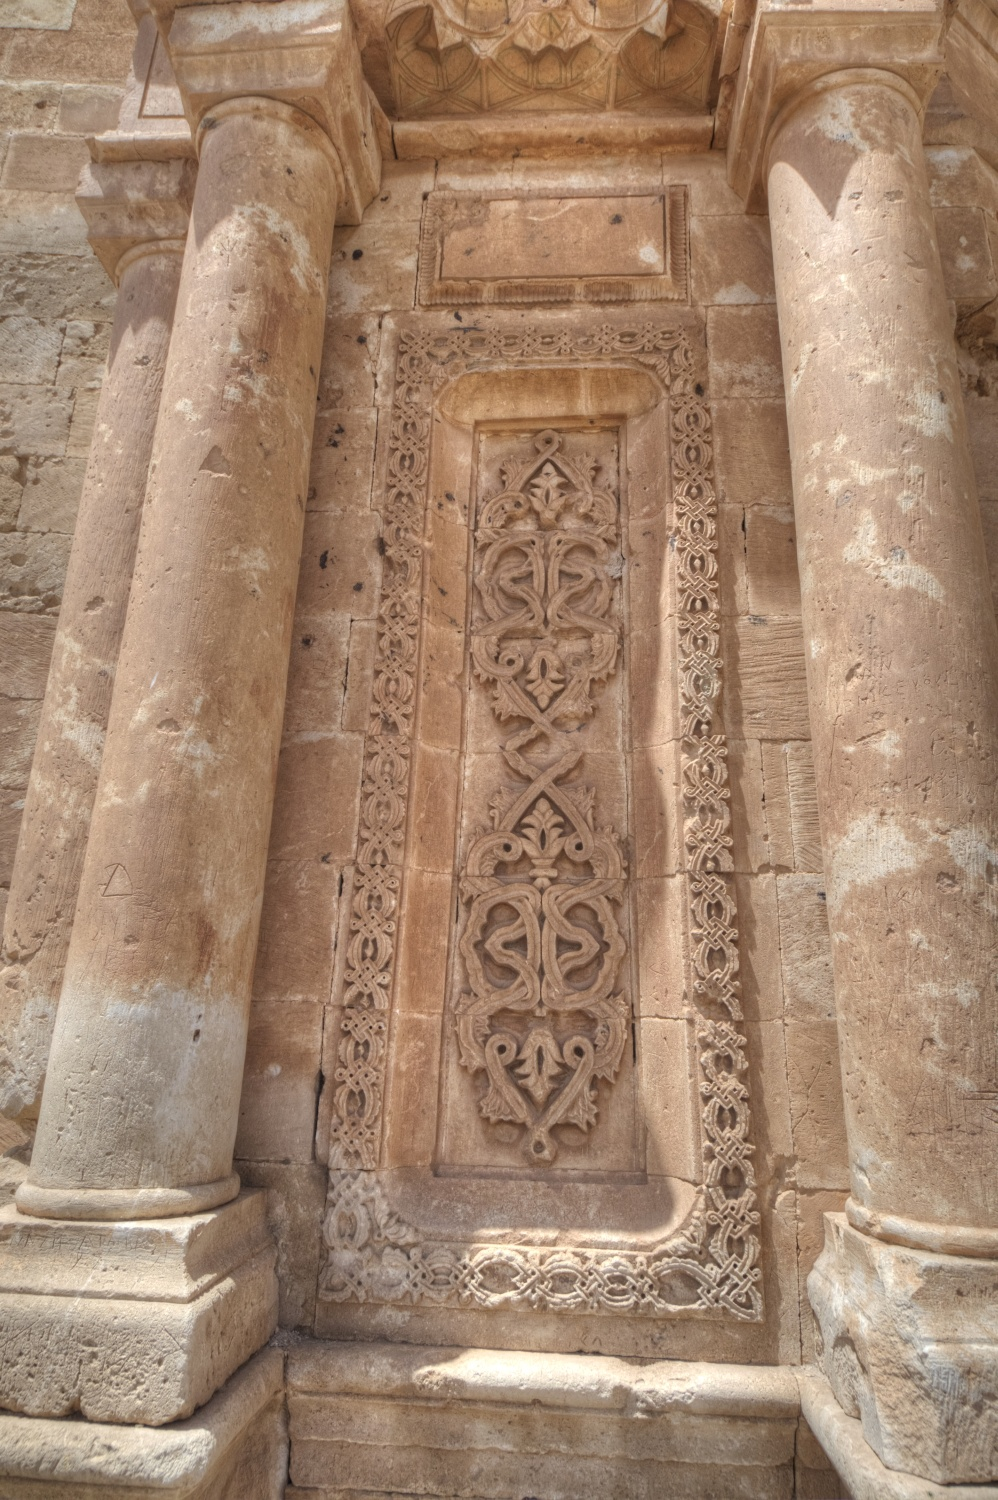 ... Ishak Pasha Palace - the entrance portal detail 9734974610